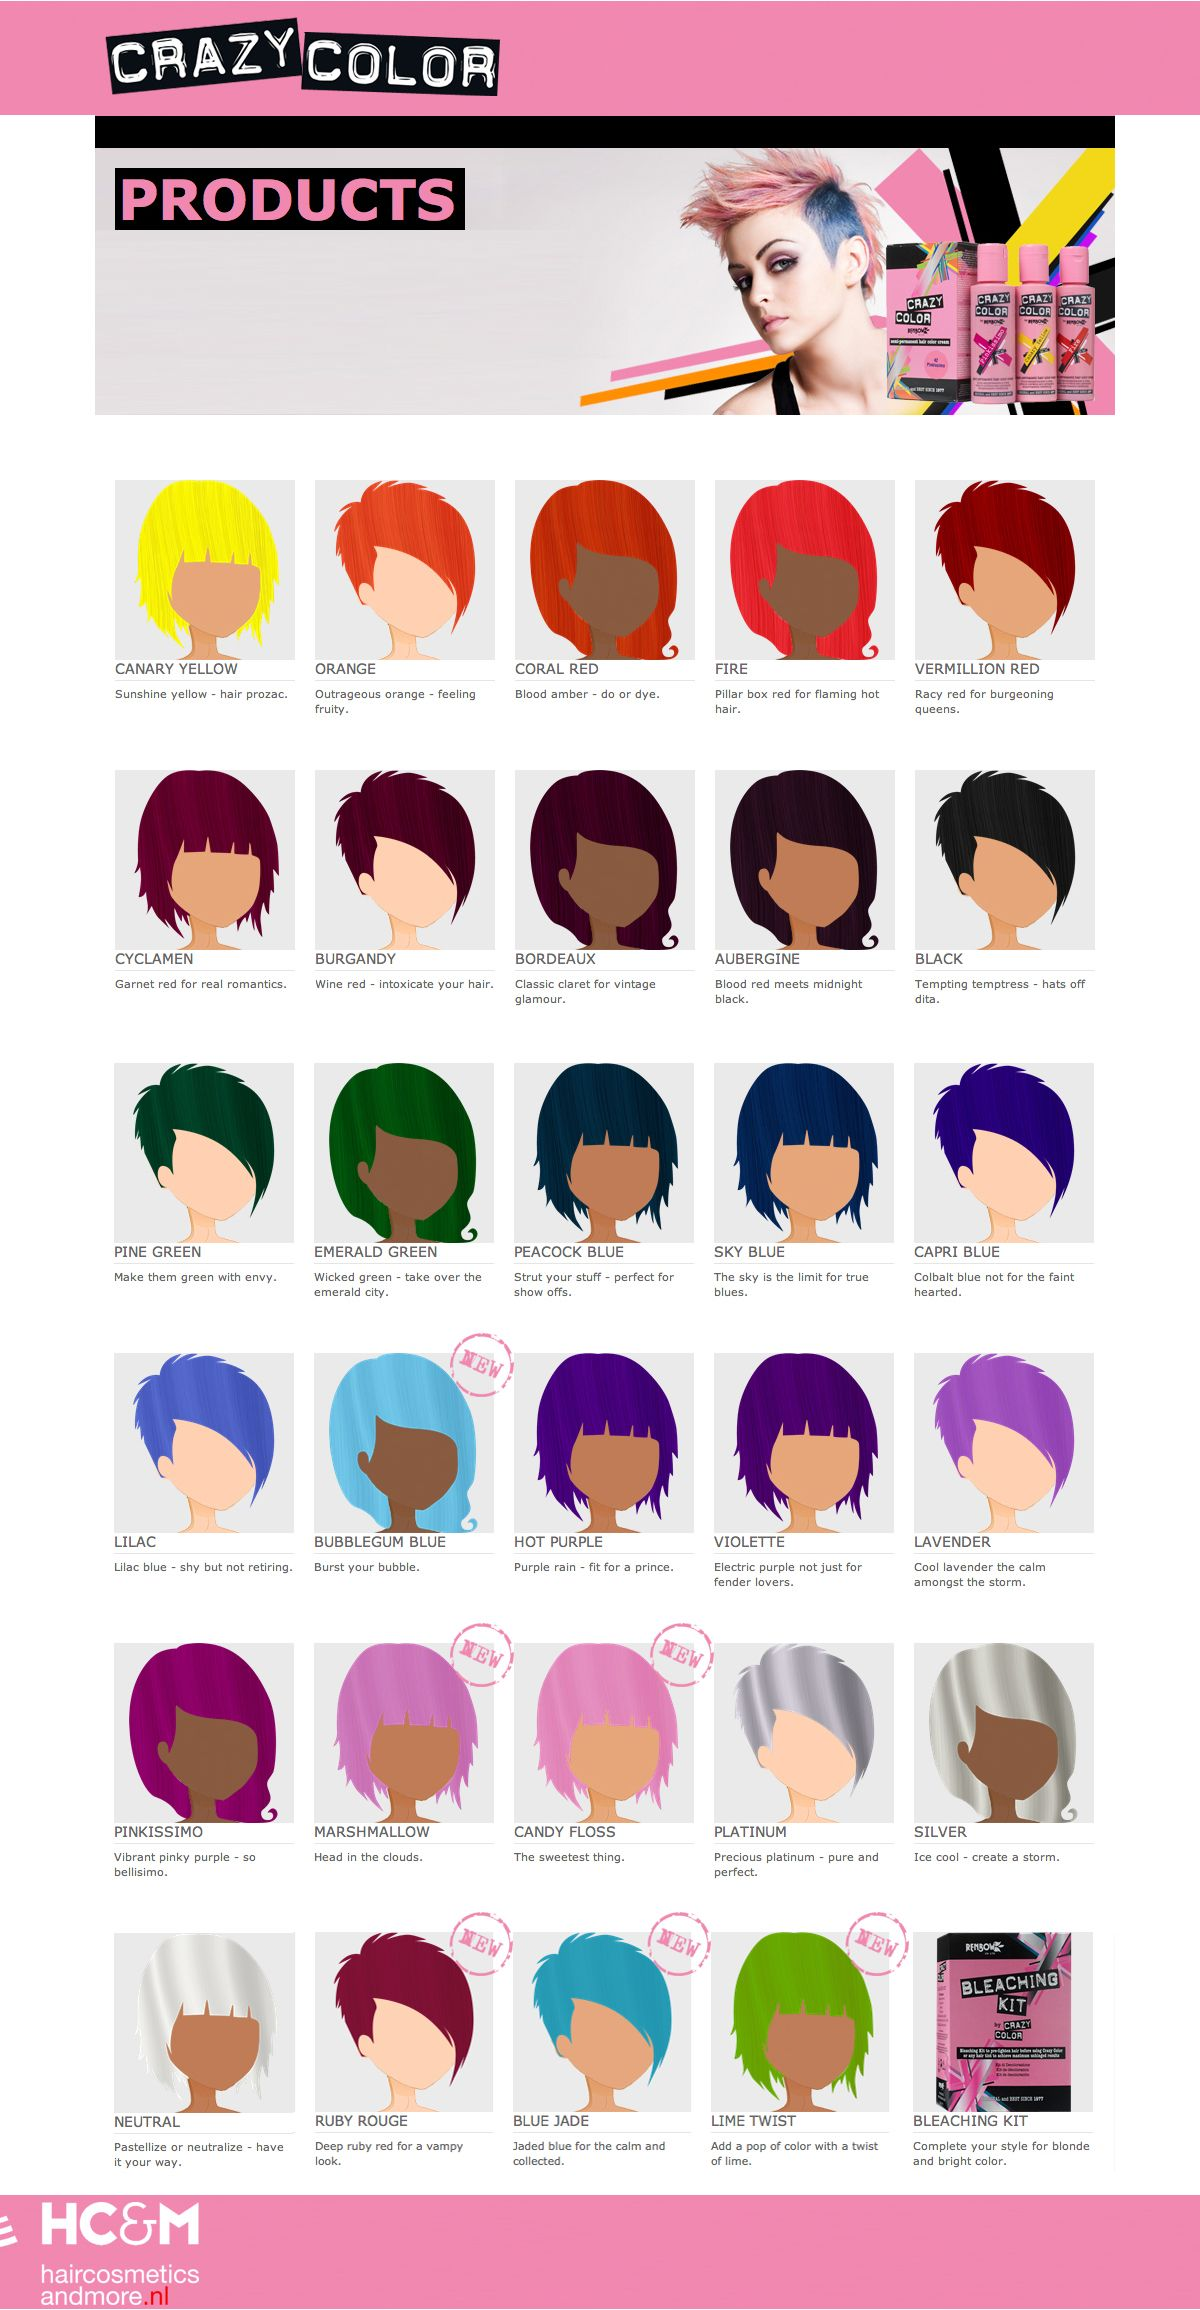 Crazy Color Swatch Chart Hair Color Swatches Hair Color Crazy